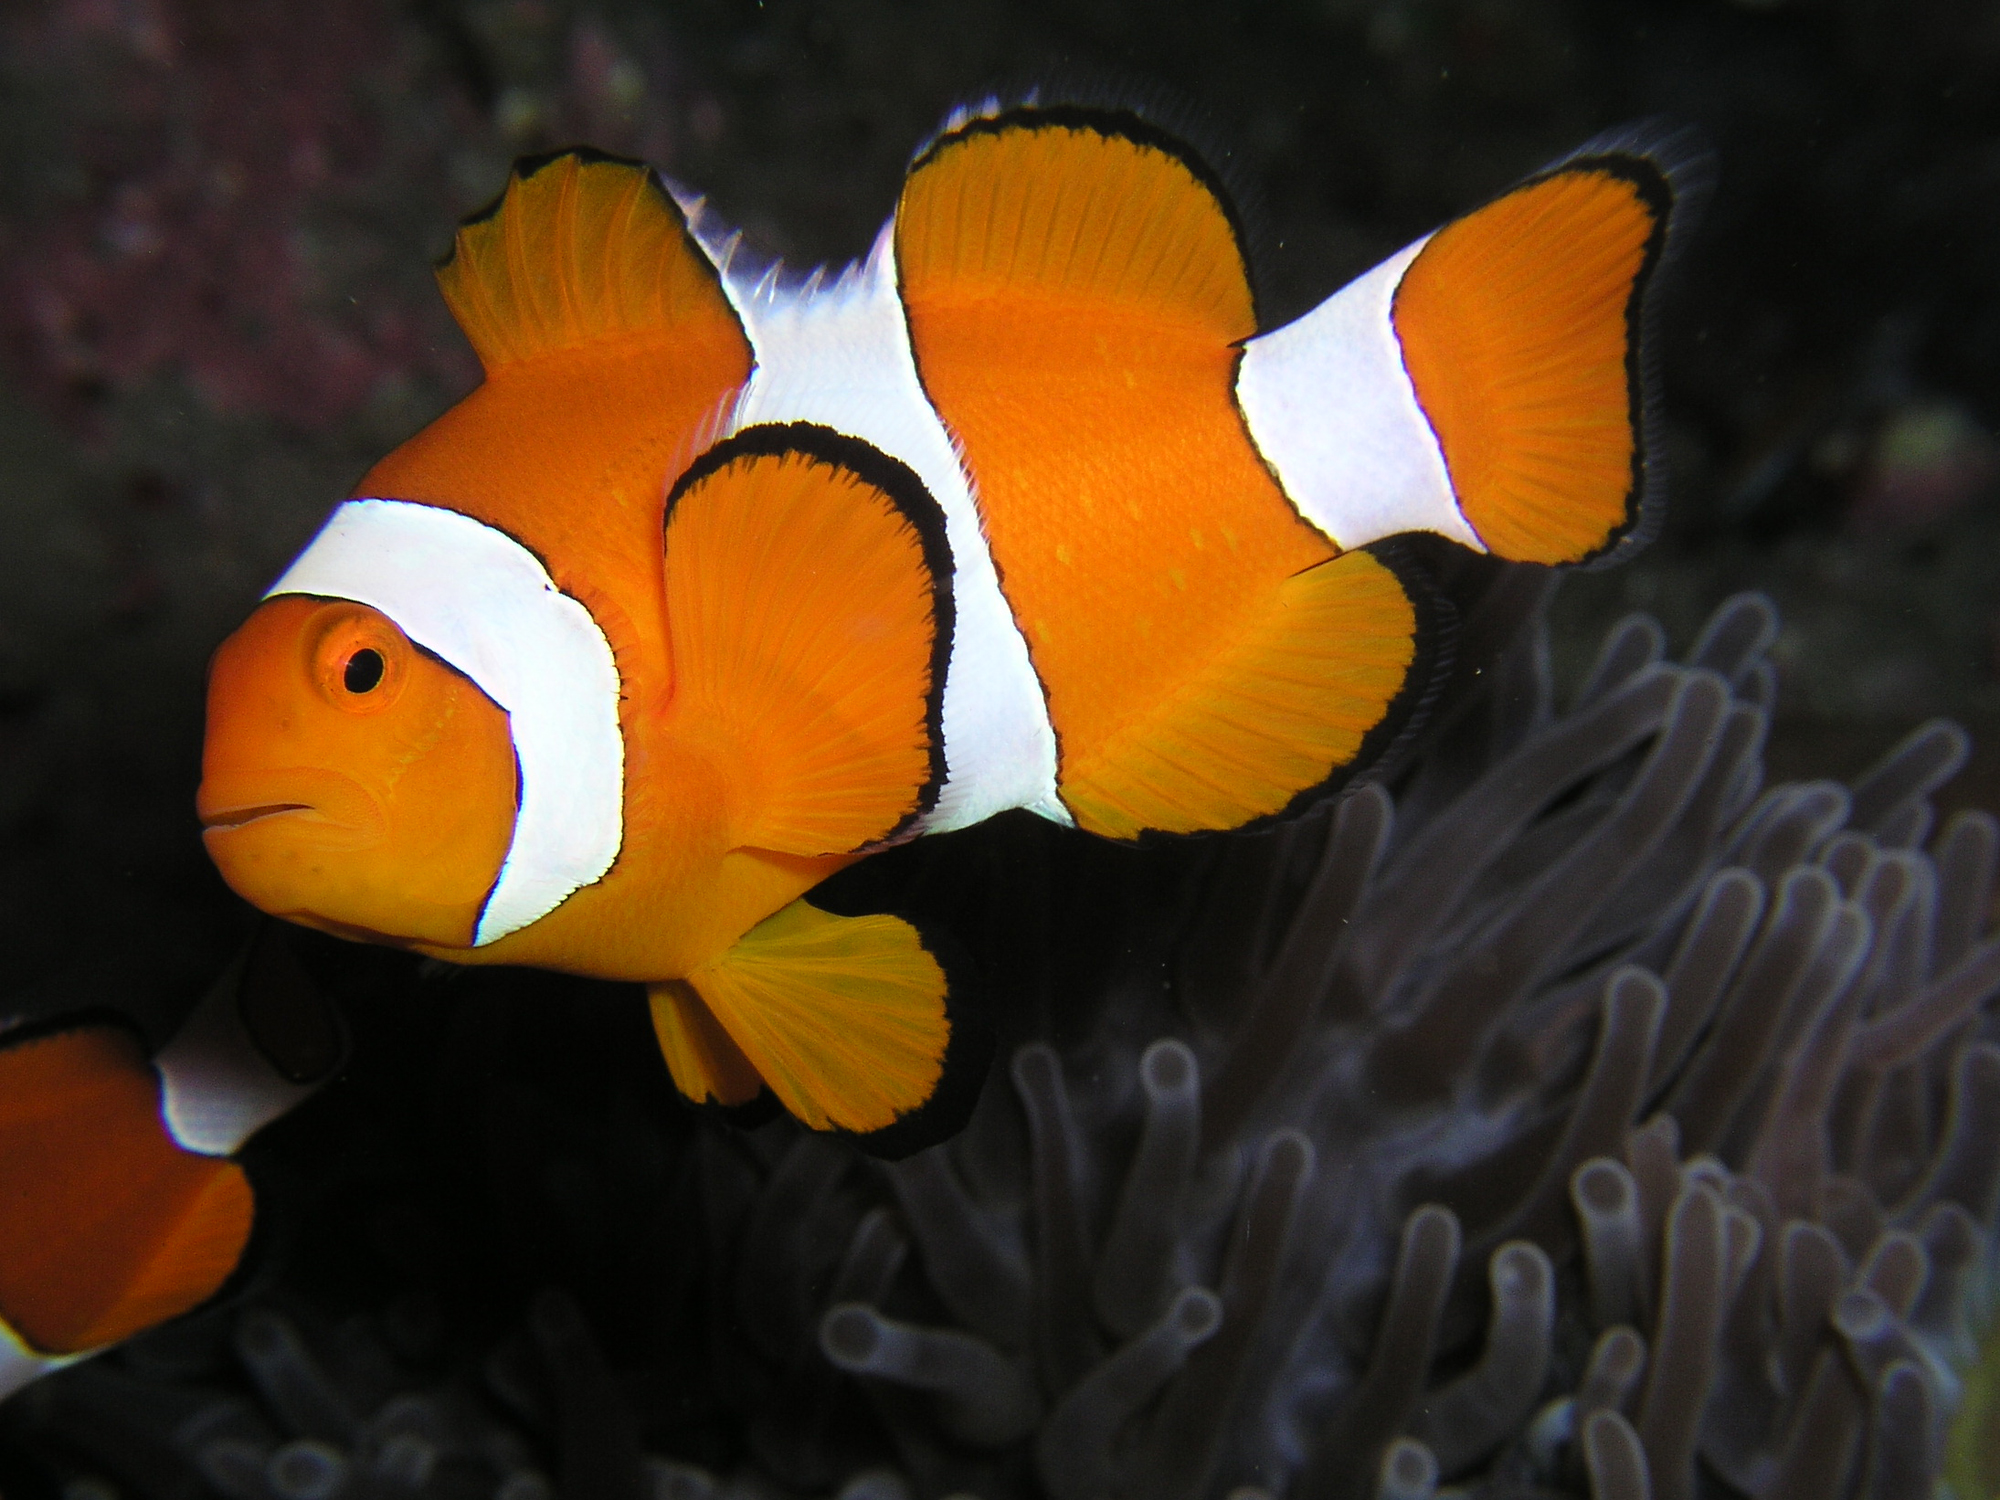 File:Amphiprion ocellaris (Clown anemonefish) Nemo.jpg ...